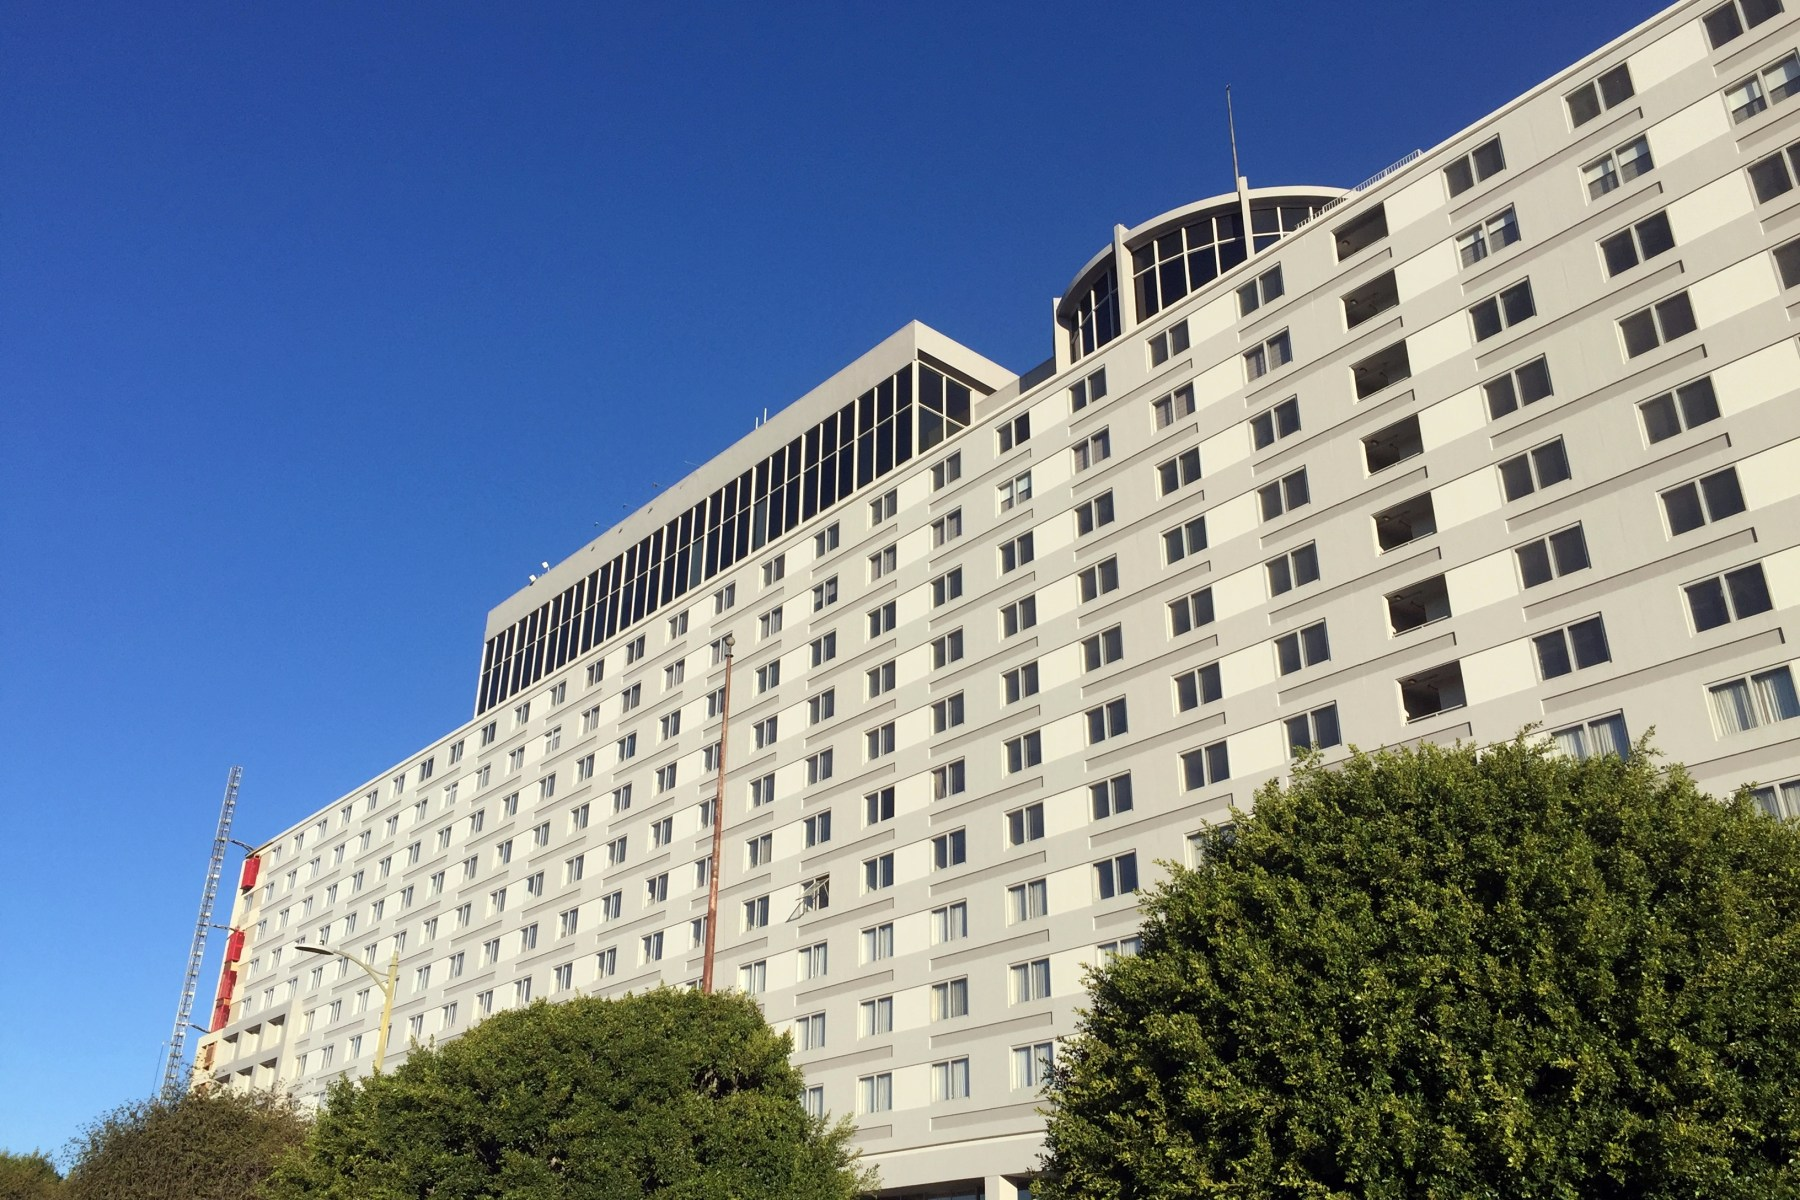 Los Angeles Hotels Refurbished For Sale